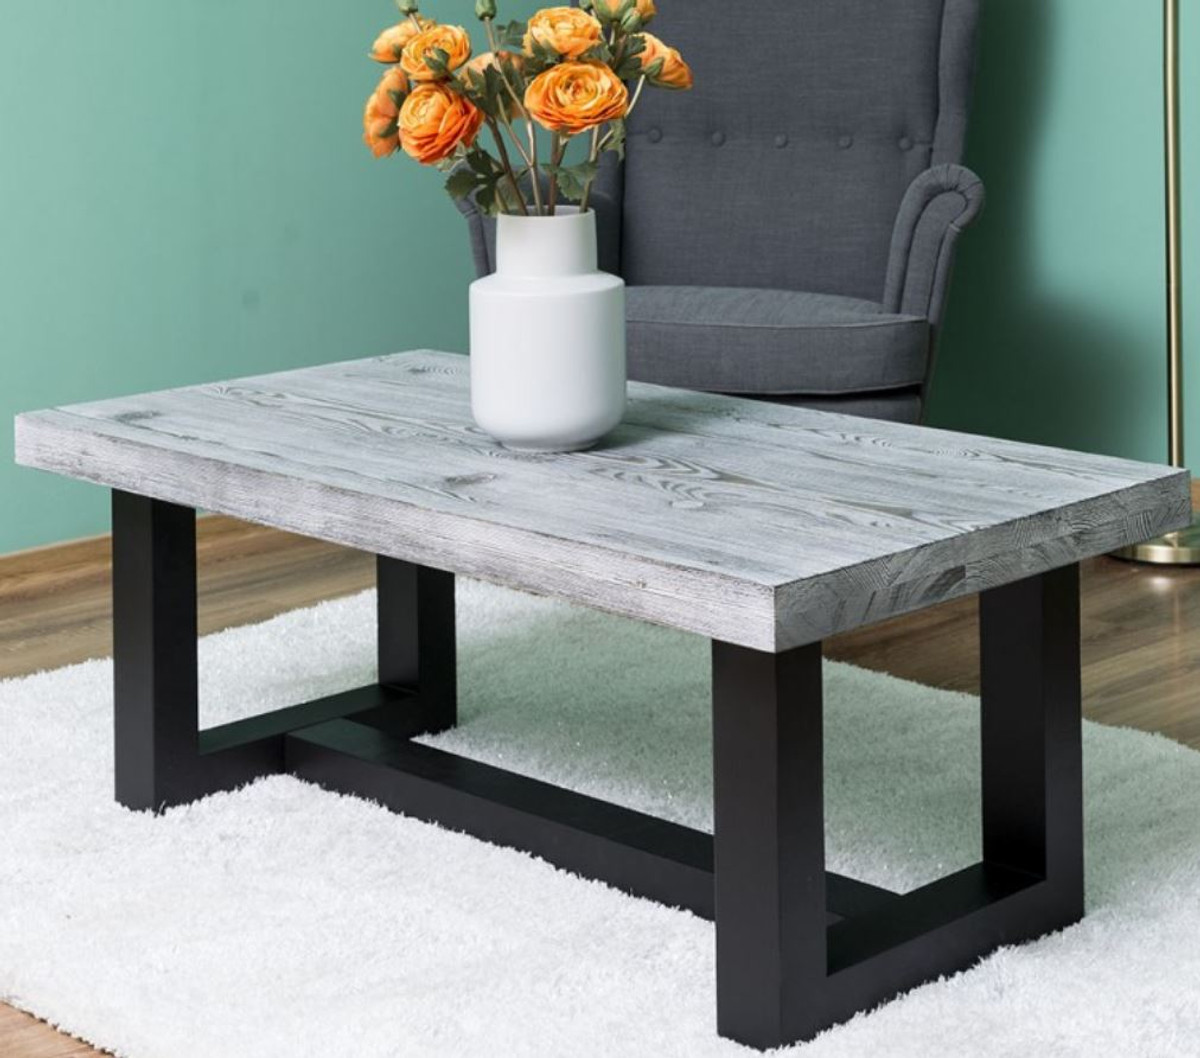 casa padrino country style coffee table gray black 120 x 60 x h 45 cm solid wood living room table living room furniture in country style